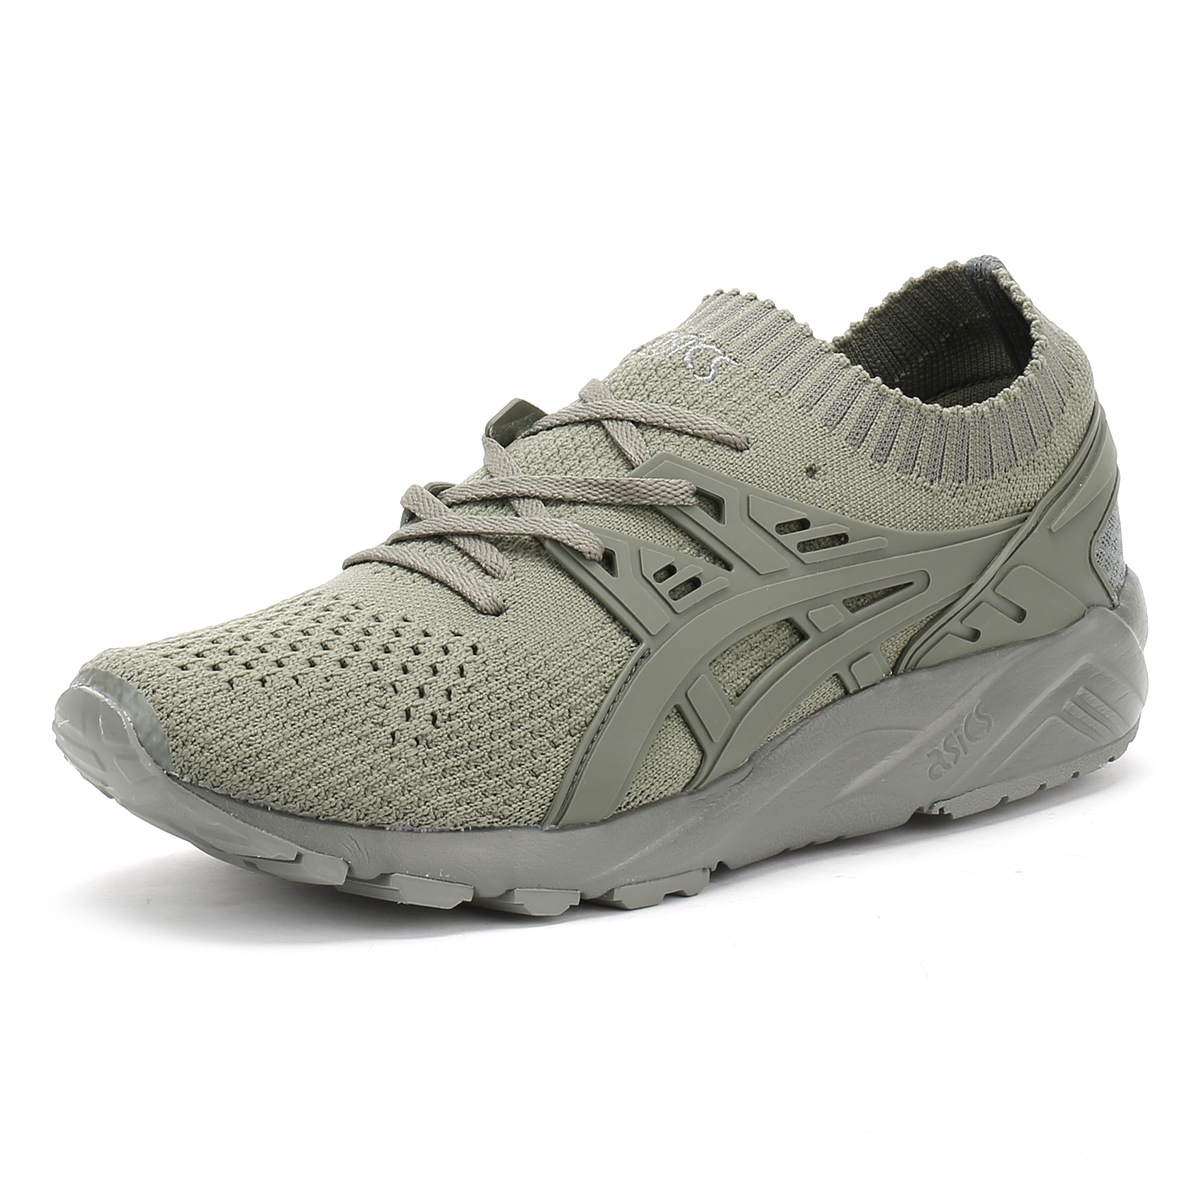 quality design 242dd 01f86 Details about ASICS Mens Knit Trainers, Agave Green, Gel Kayano, Lace Up,  Sport Shoes